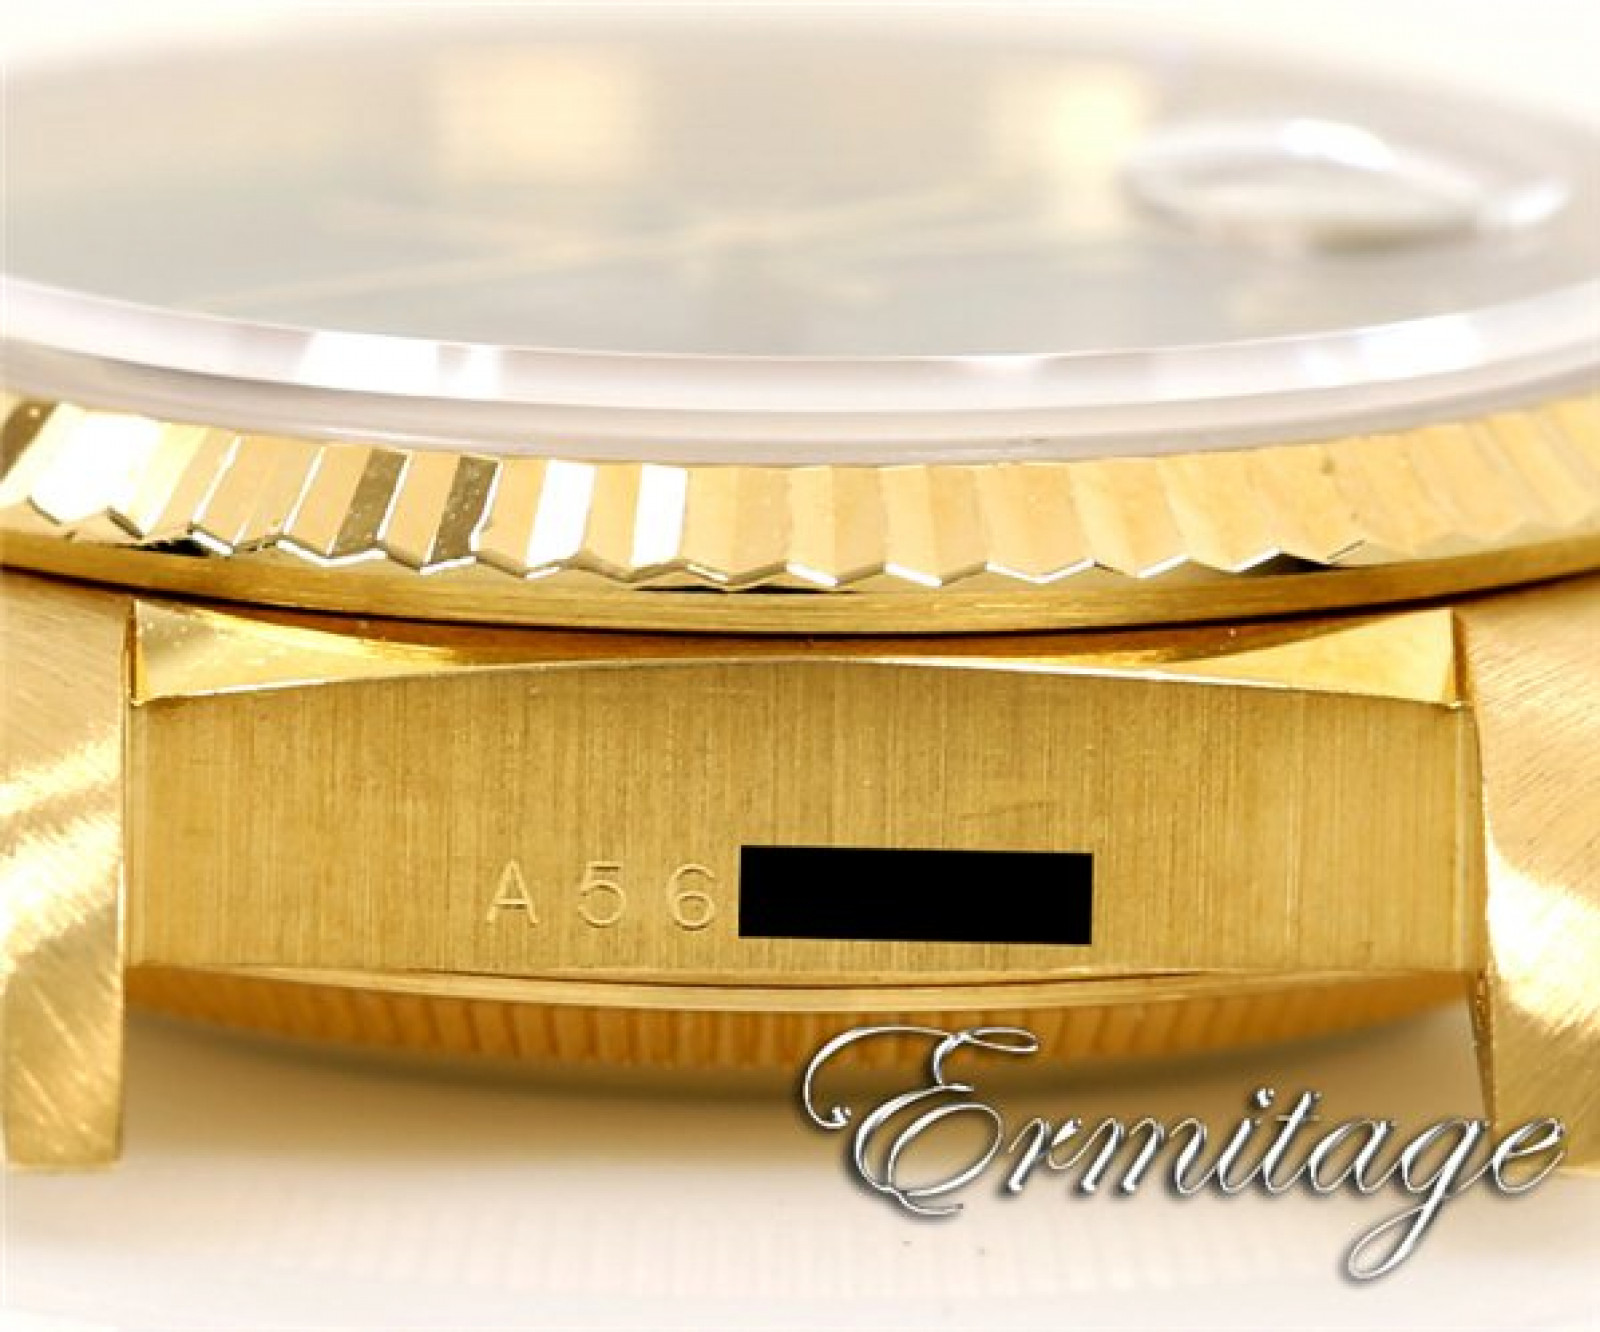 Pre-Owned Rolex Day-Date 18238 with President Bracelet